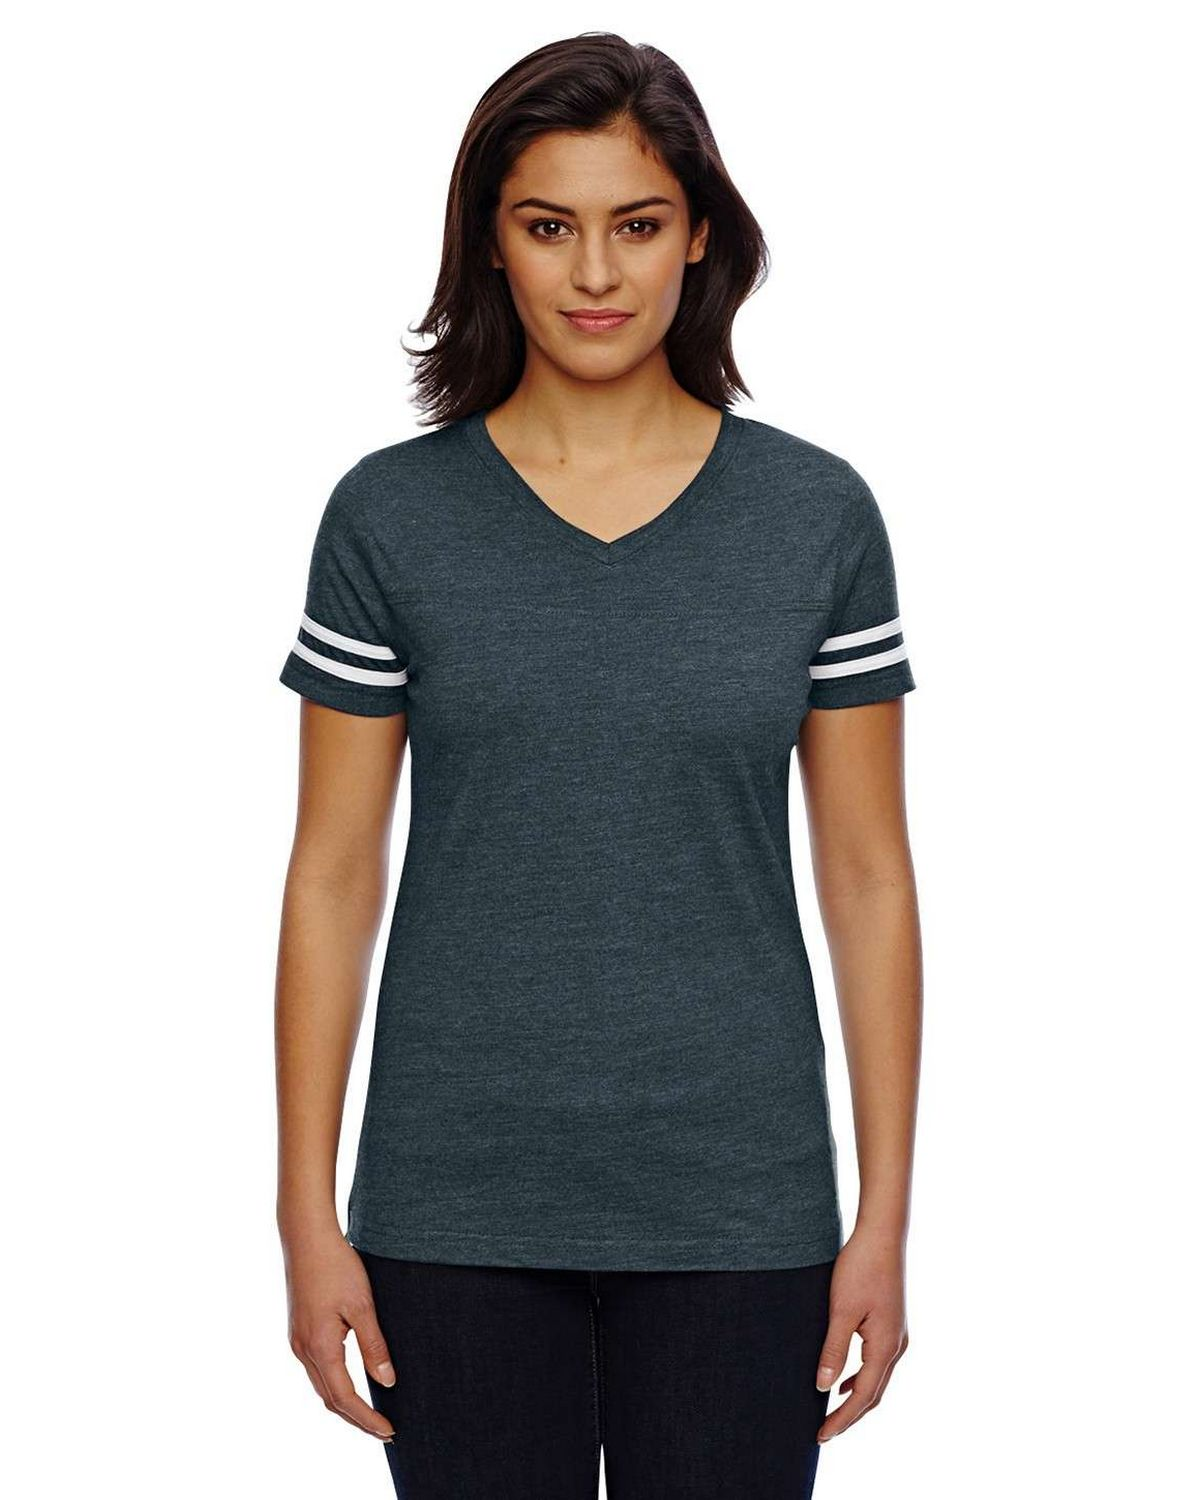 Lat 3537 Ladies Football Tee - Vintage Navy/Blended White - L 3537